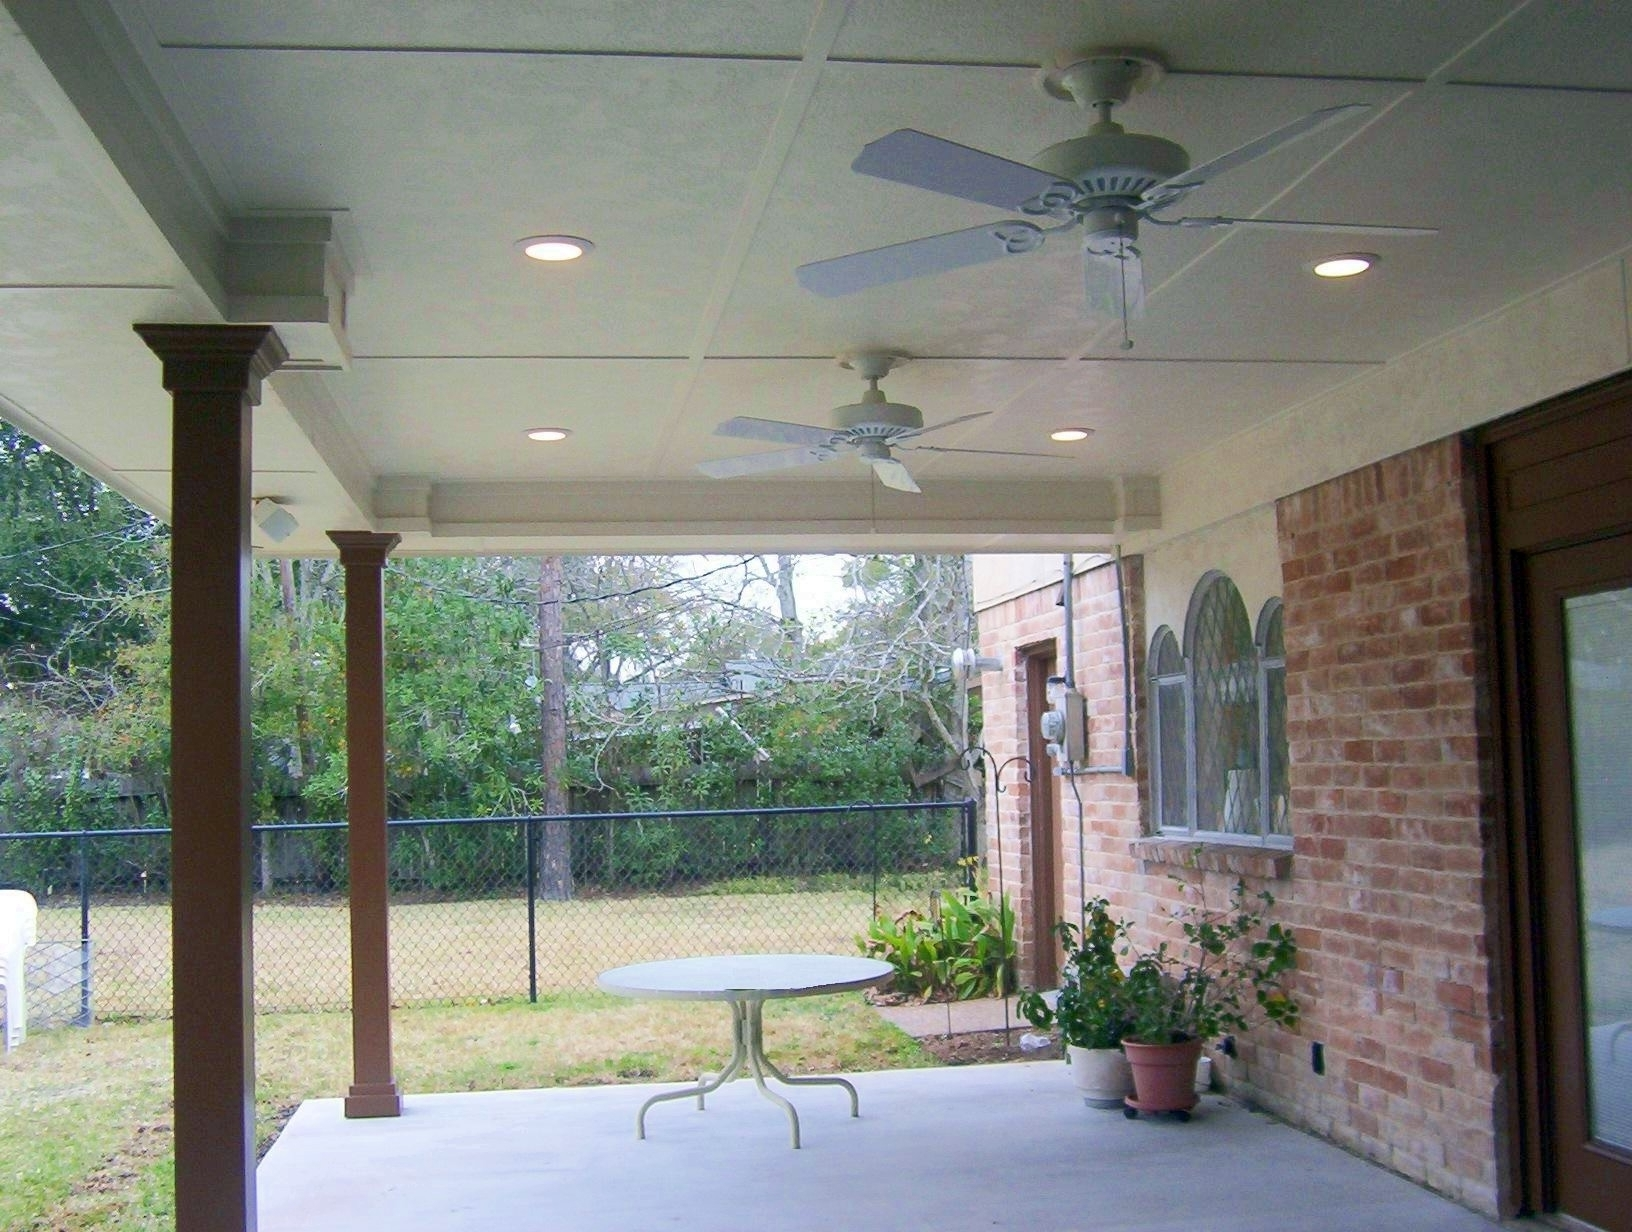 2018 Fabulous Outdoor Patio Ceiling Fans Cool Outdoor Ceiling Fans Patio Intended For Outdoor Ceiling Fans For Porches (View 1 of 20)